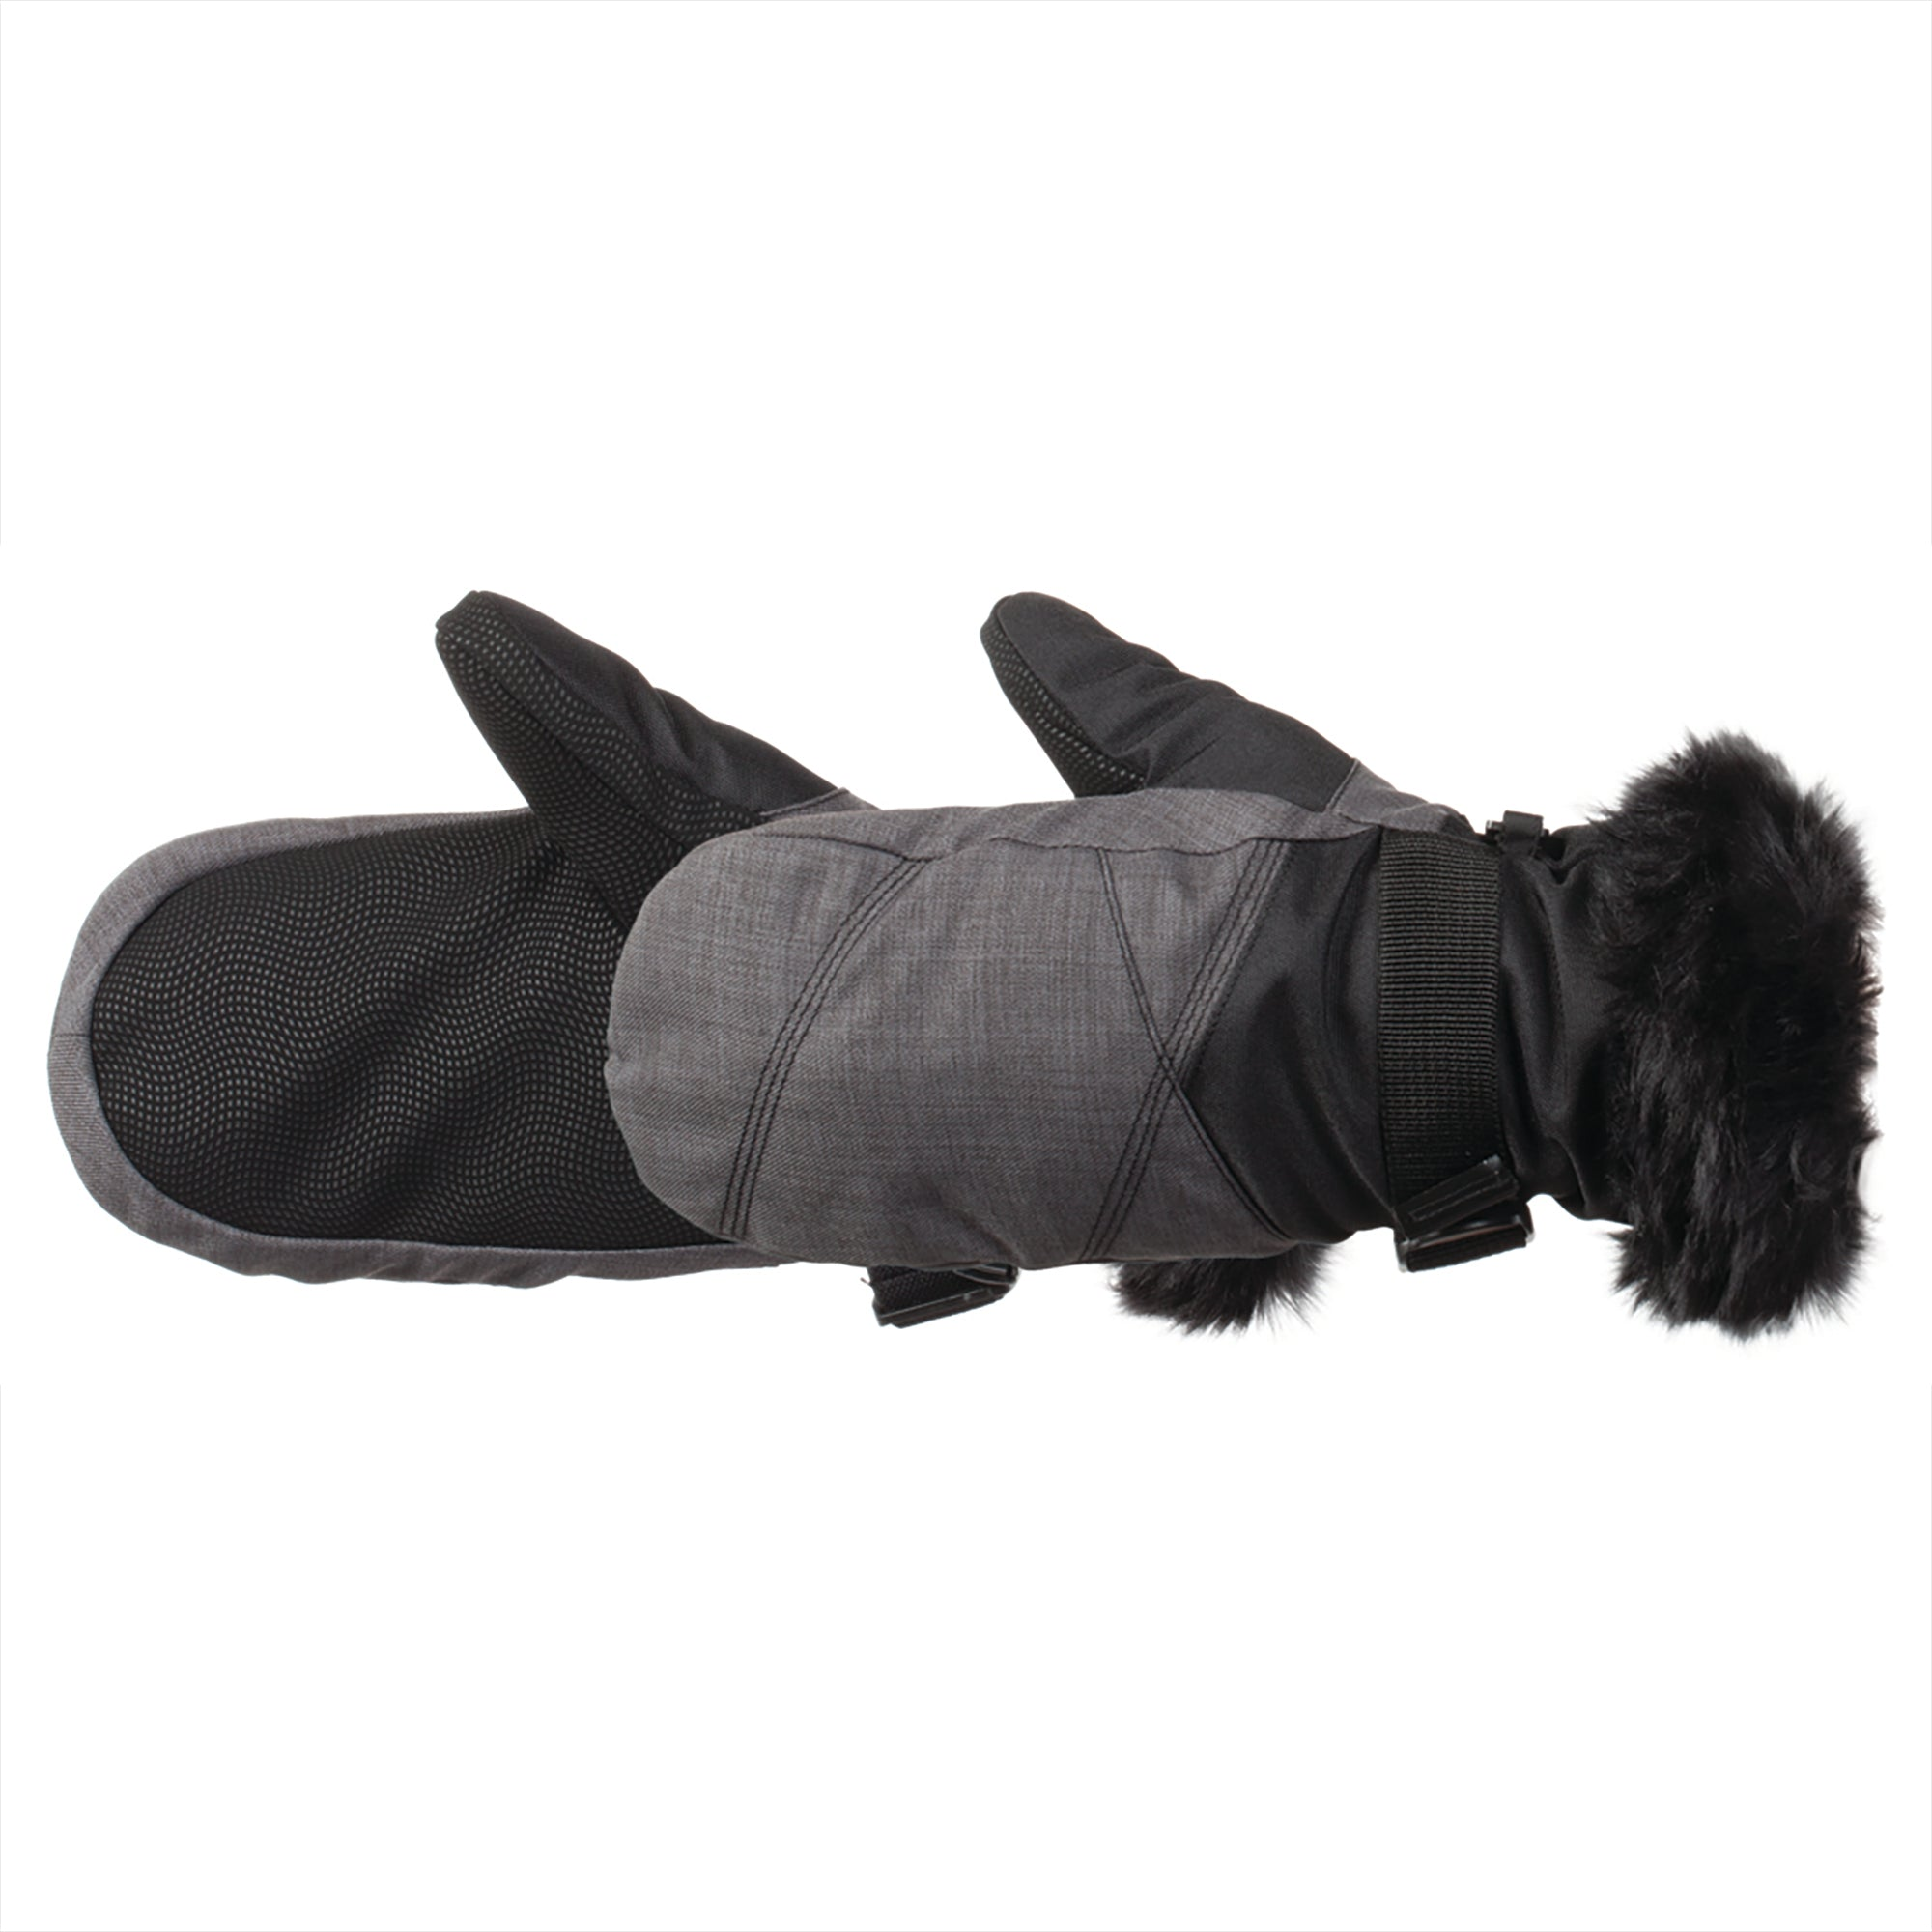 Manzella ASPEN Outdoor Mittens for Women